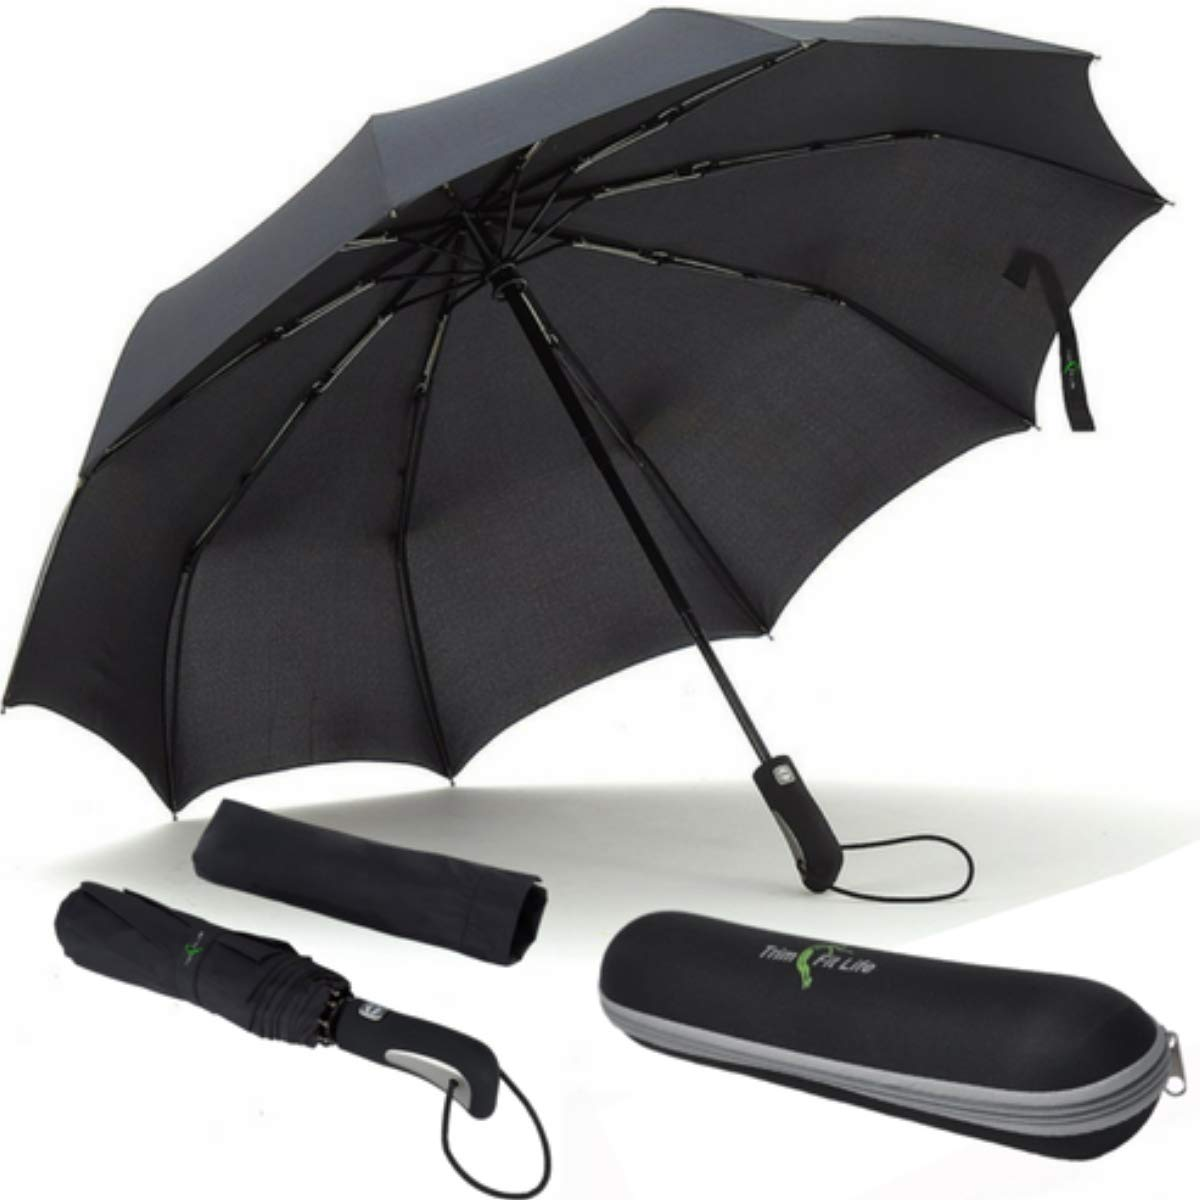 PhlipUp- Teflon Coated WindProof Compact Travel Umbrella With Water Repel Case Trim Fit Life 35045